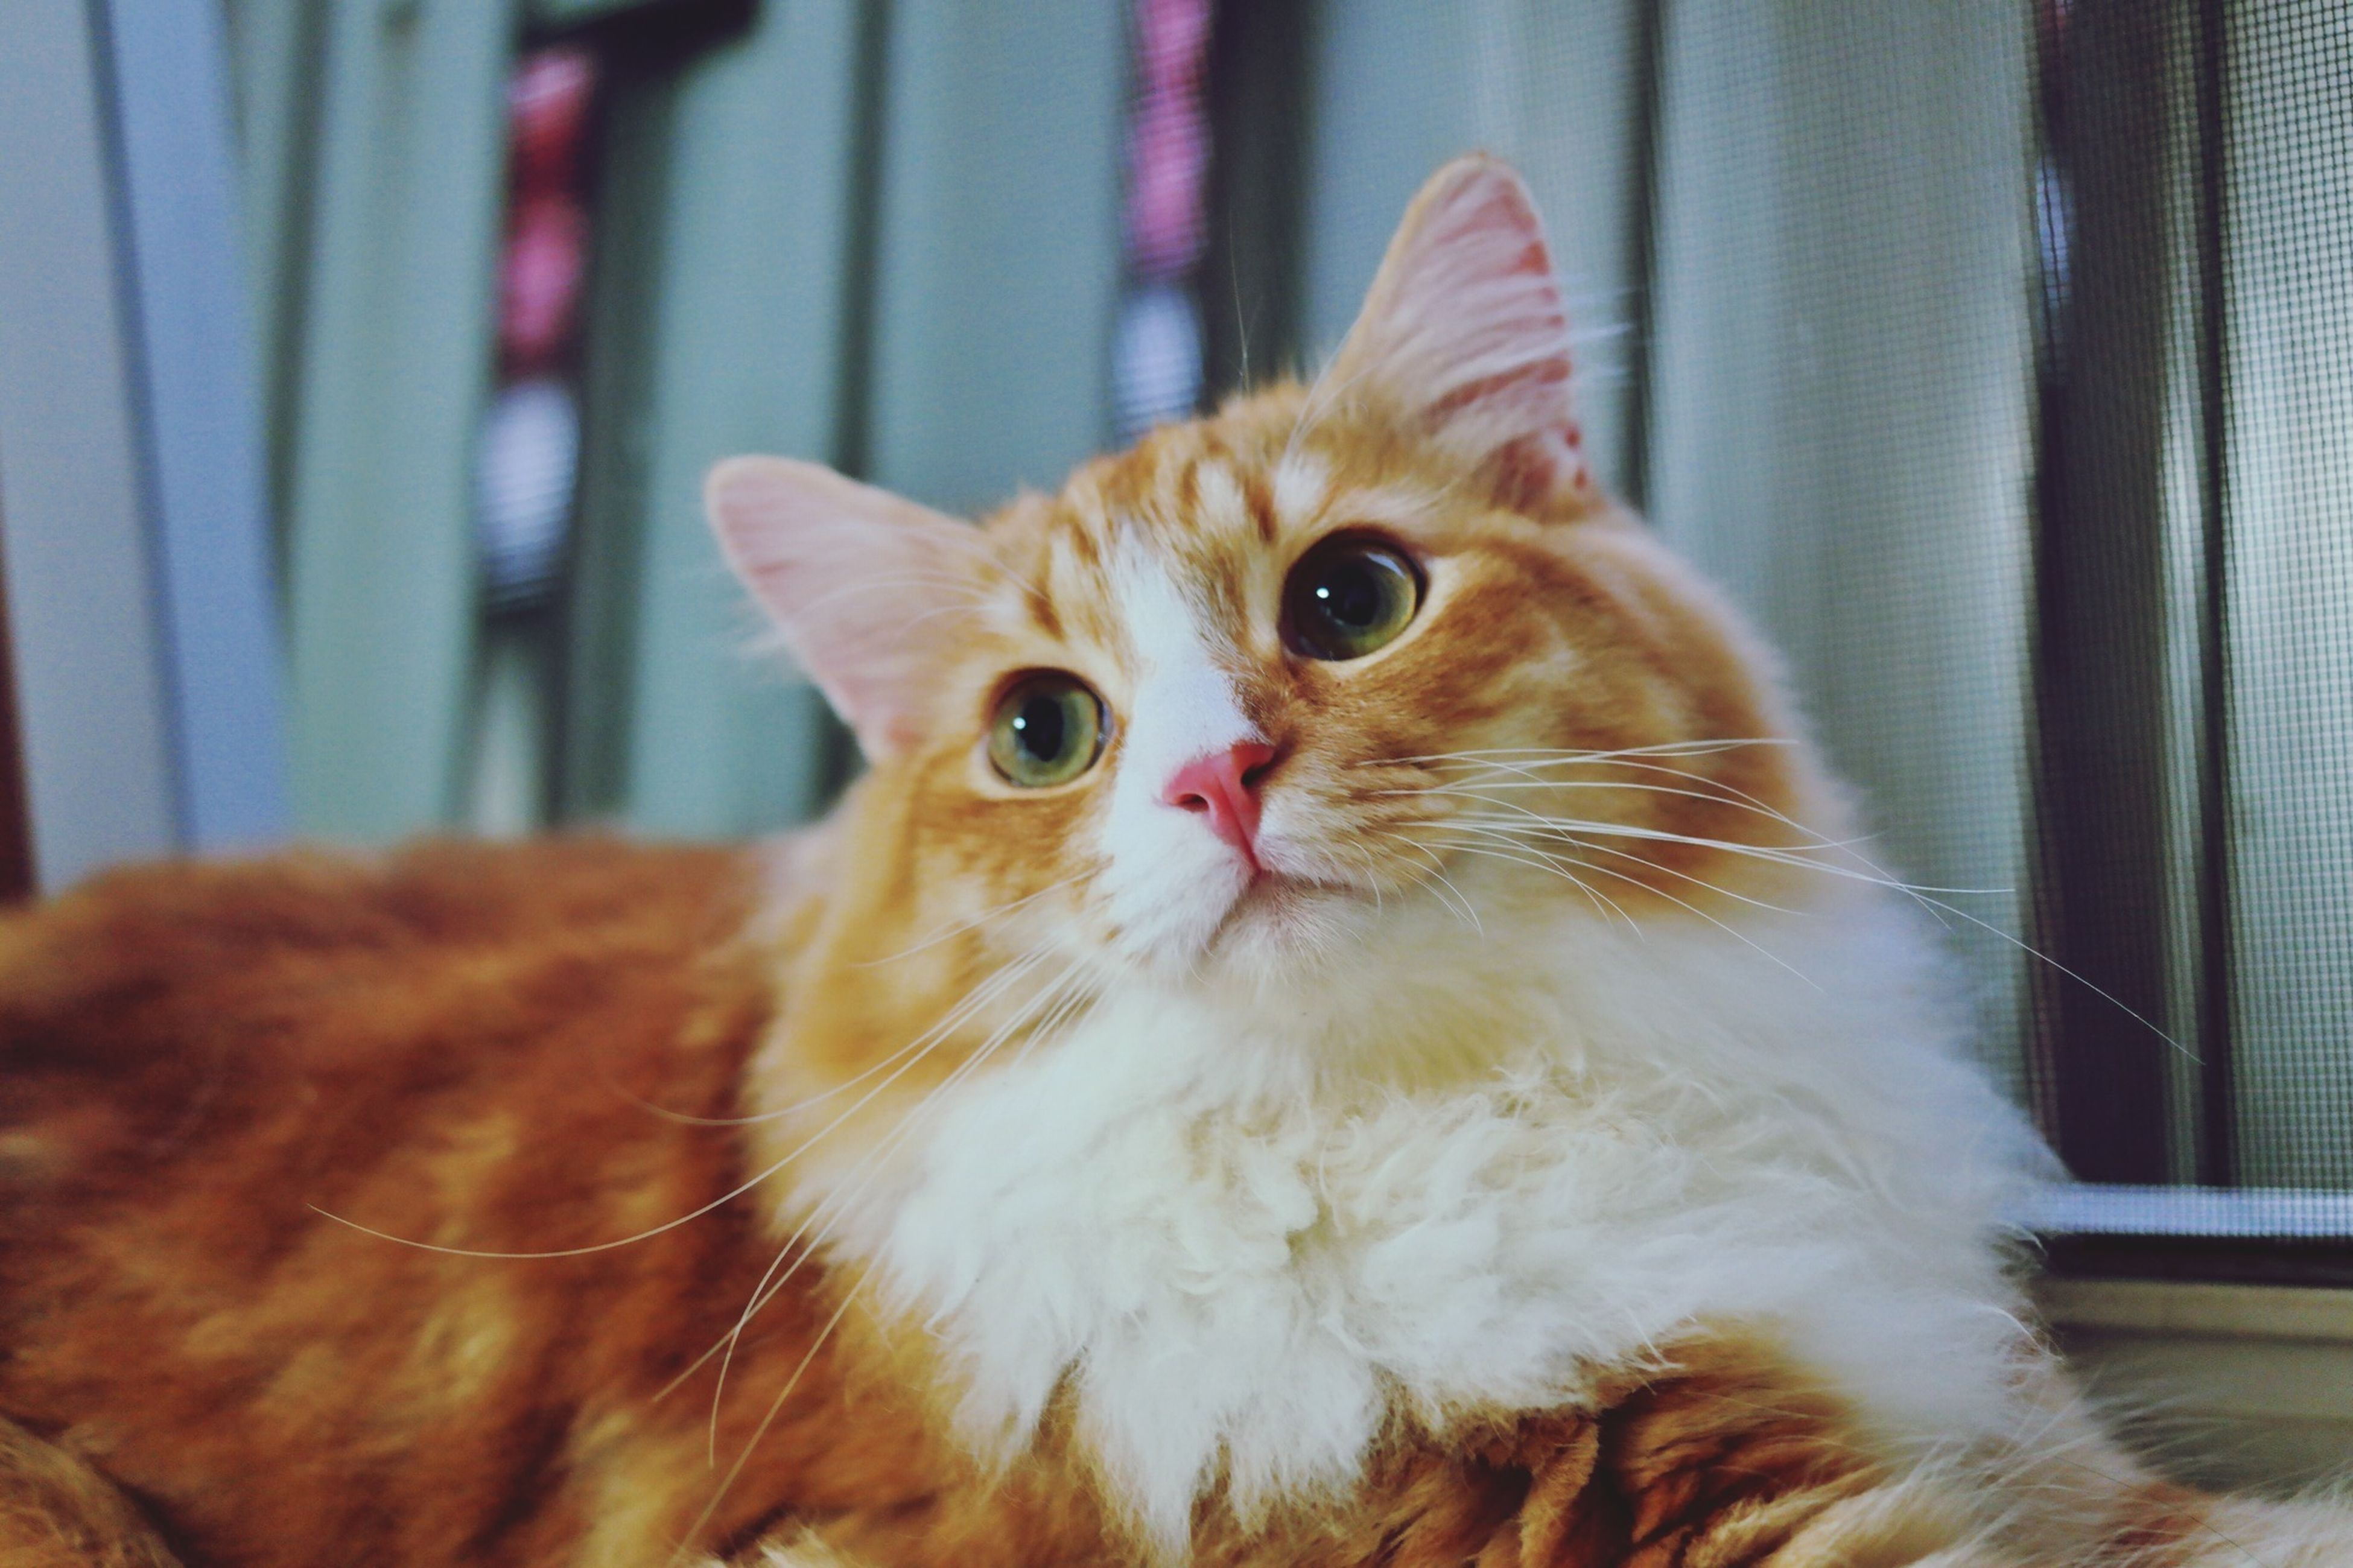 domestic cat, pets, domestic animals, one animal, animal themes, cat, feline, indoors, mammal, whisker, close-up, focus on foreground, portrait, looking away, animal head, home interior, alertness, no people, selective focus